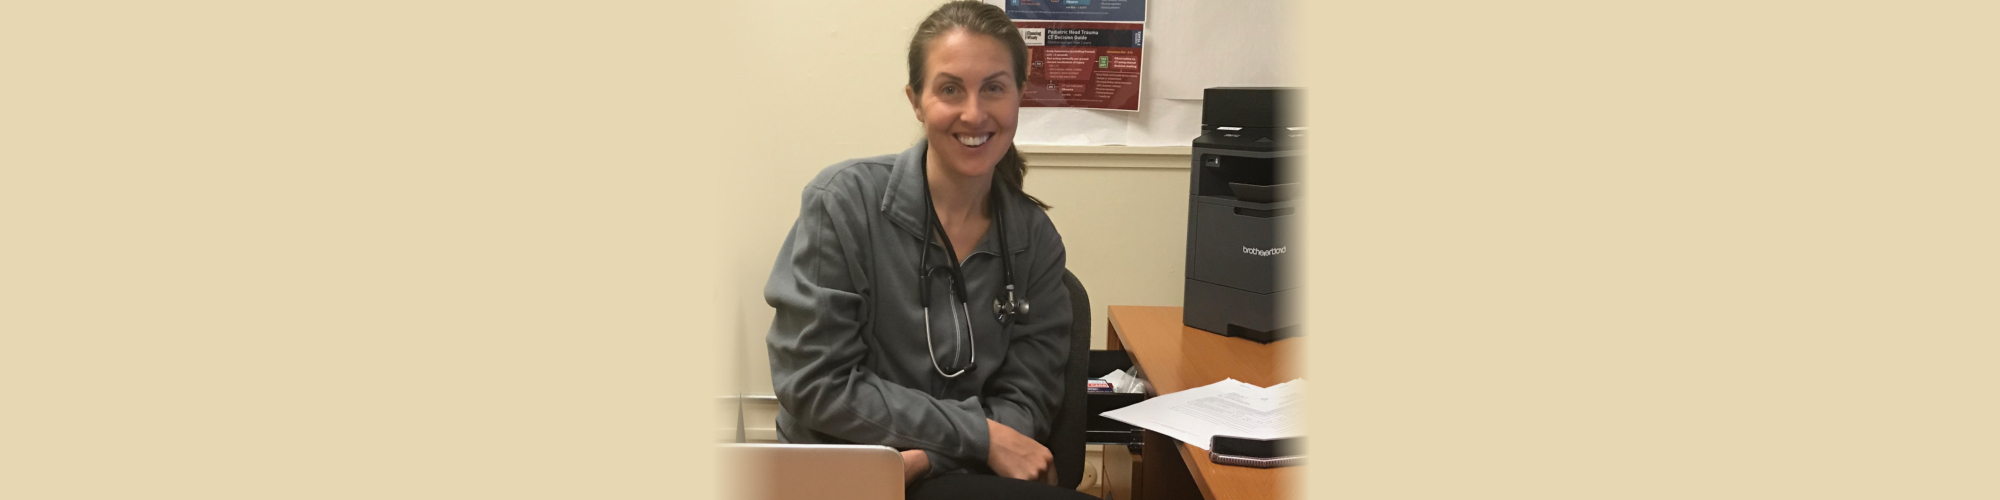 Doctor Smiling with stethoscope on her neck